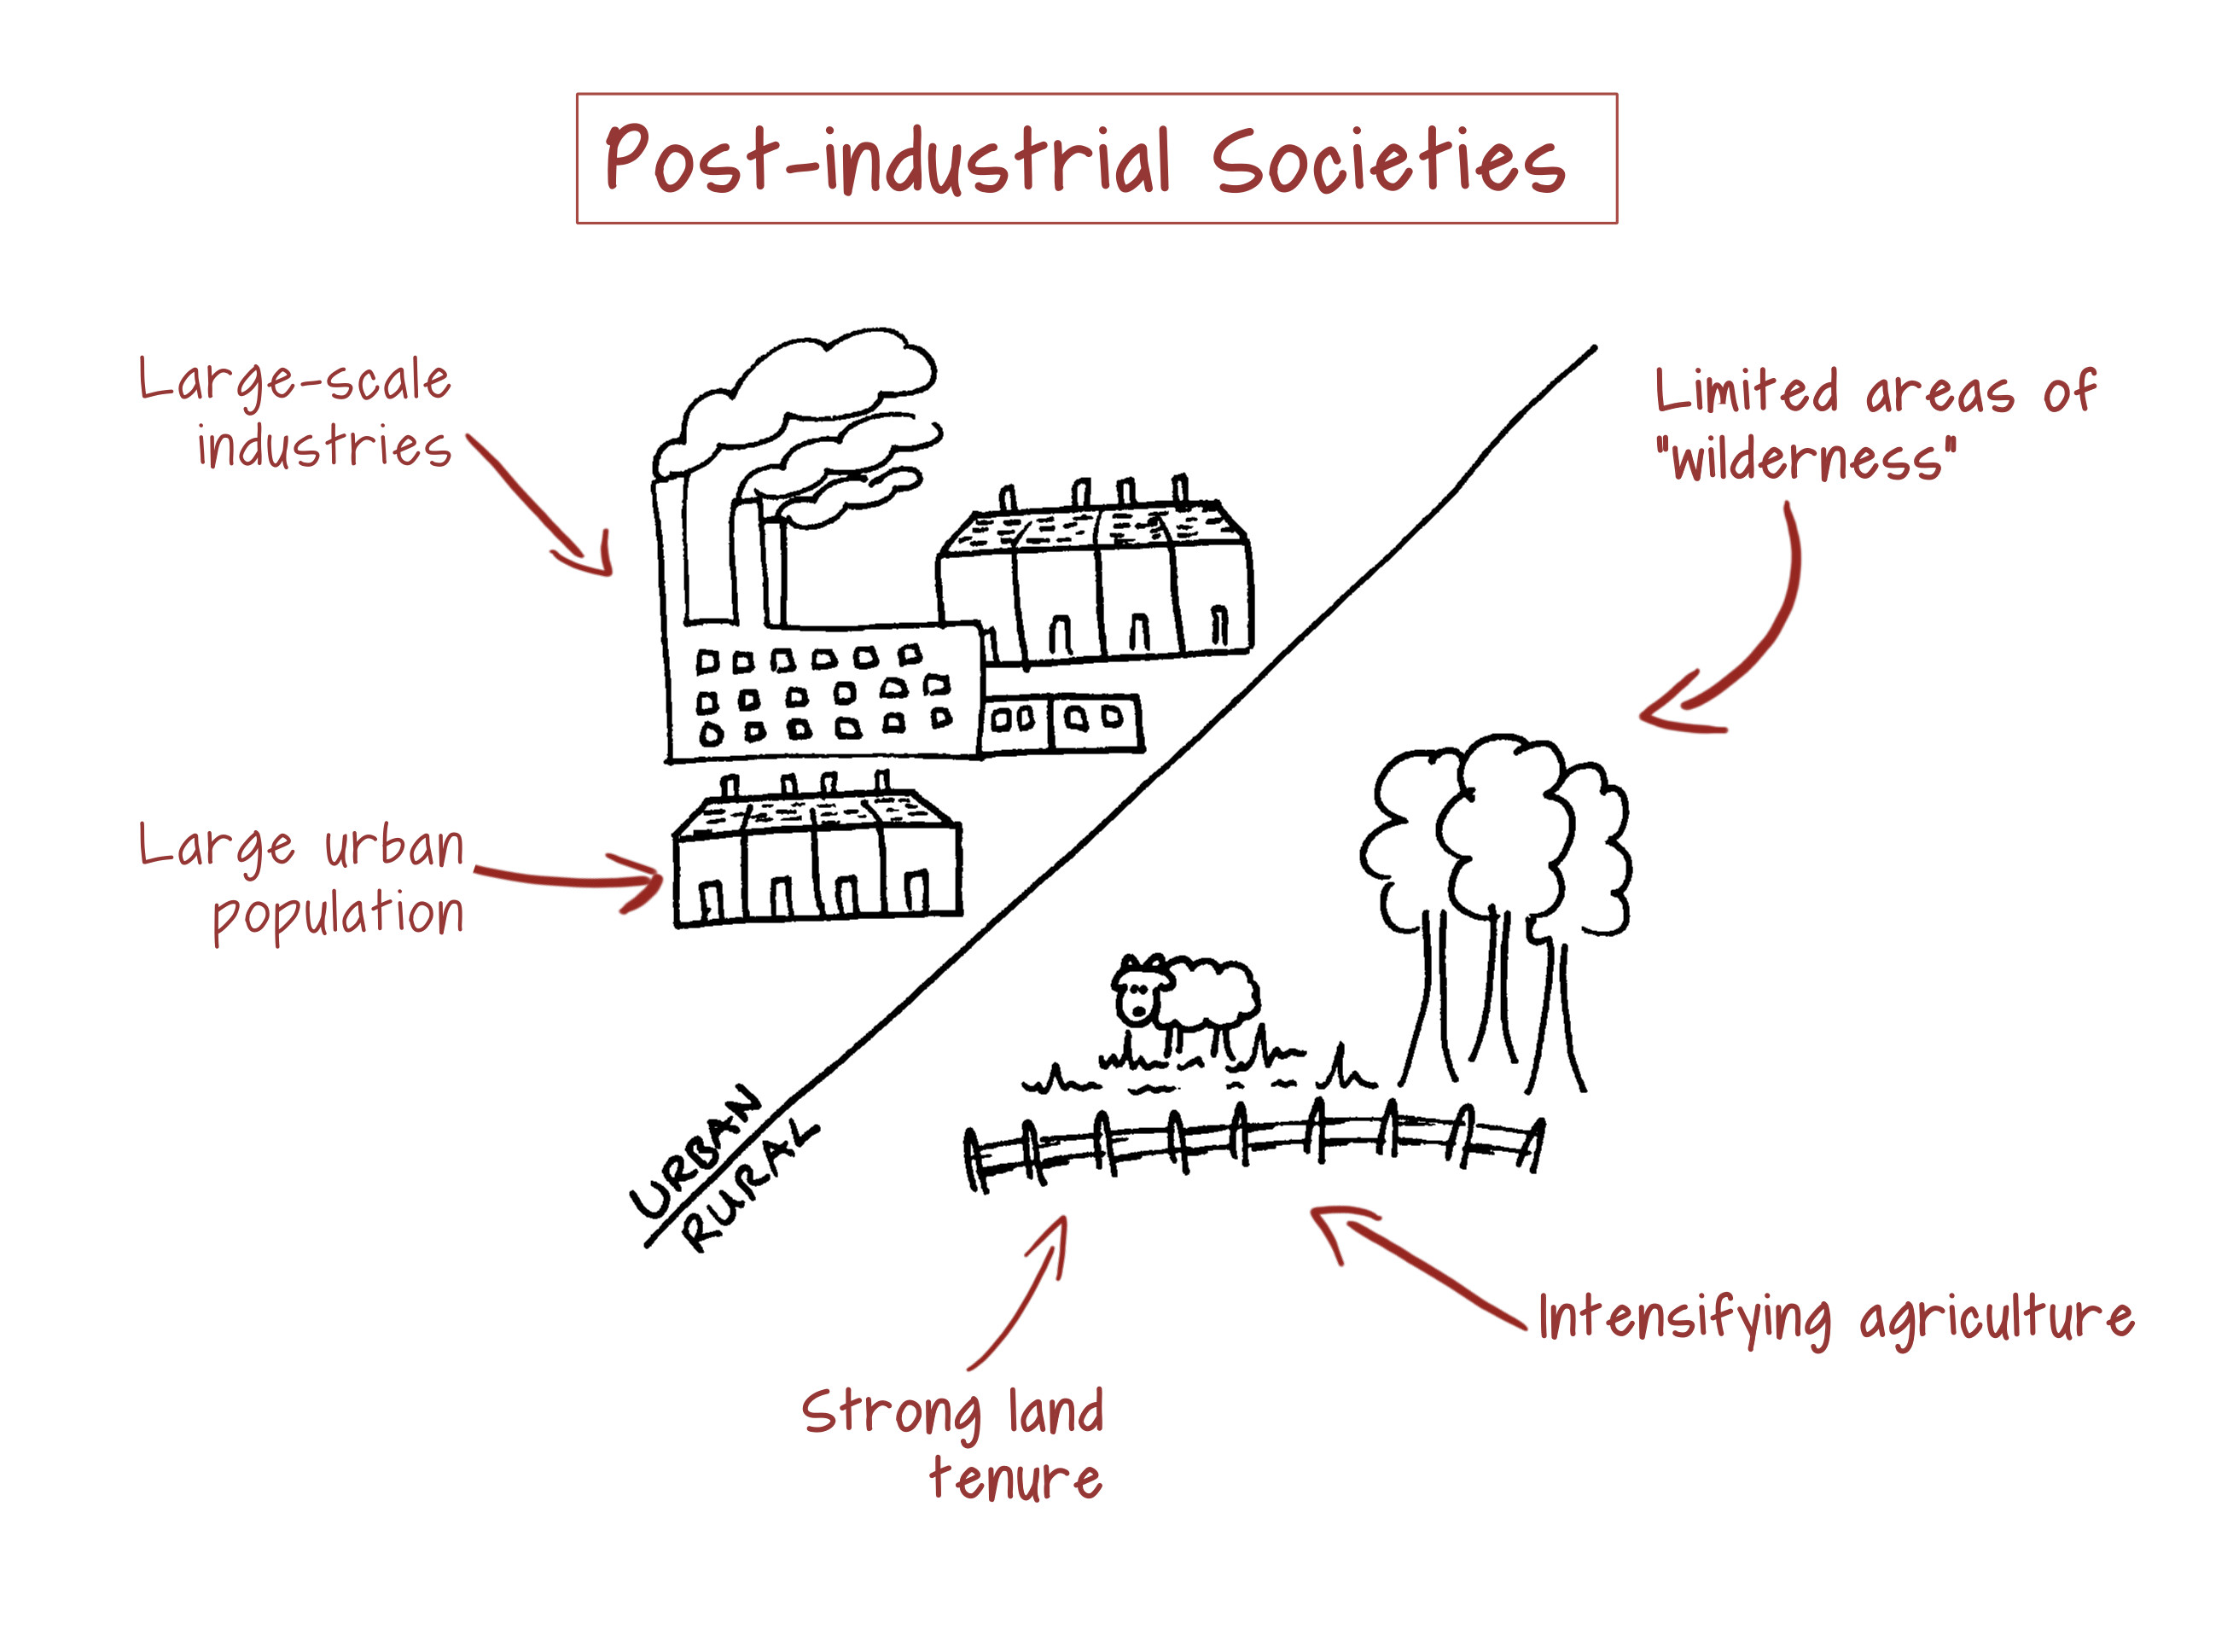 Opinions on post industrial society